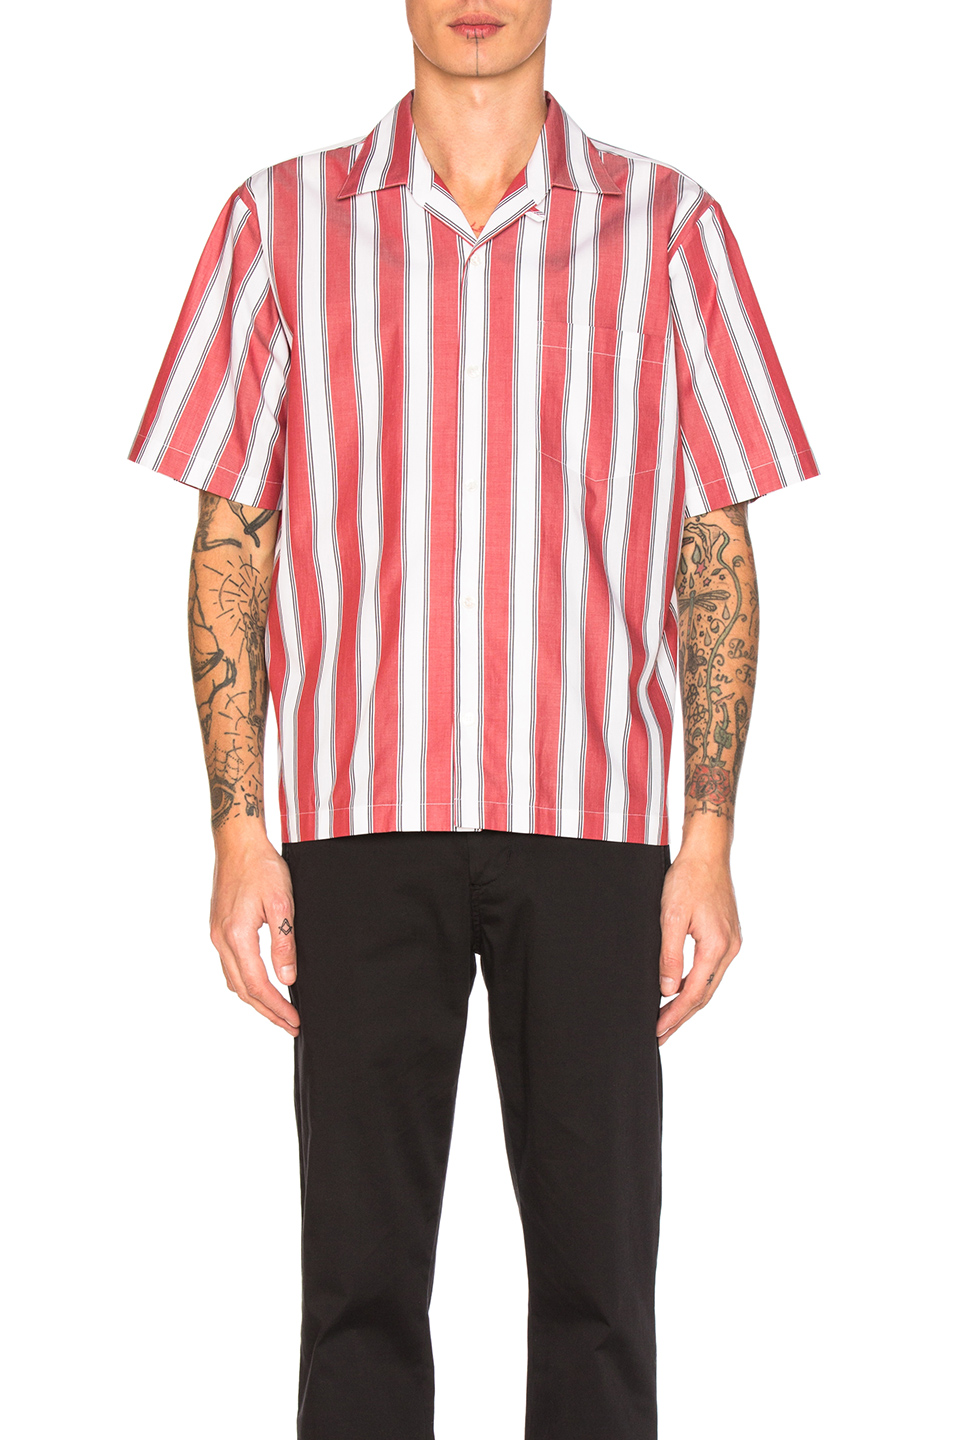 Stella McCartneyStriped Shirt in Red,Stripes